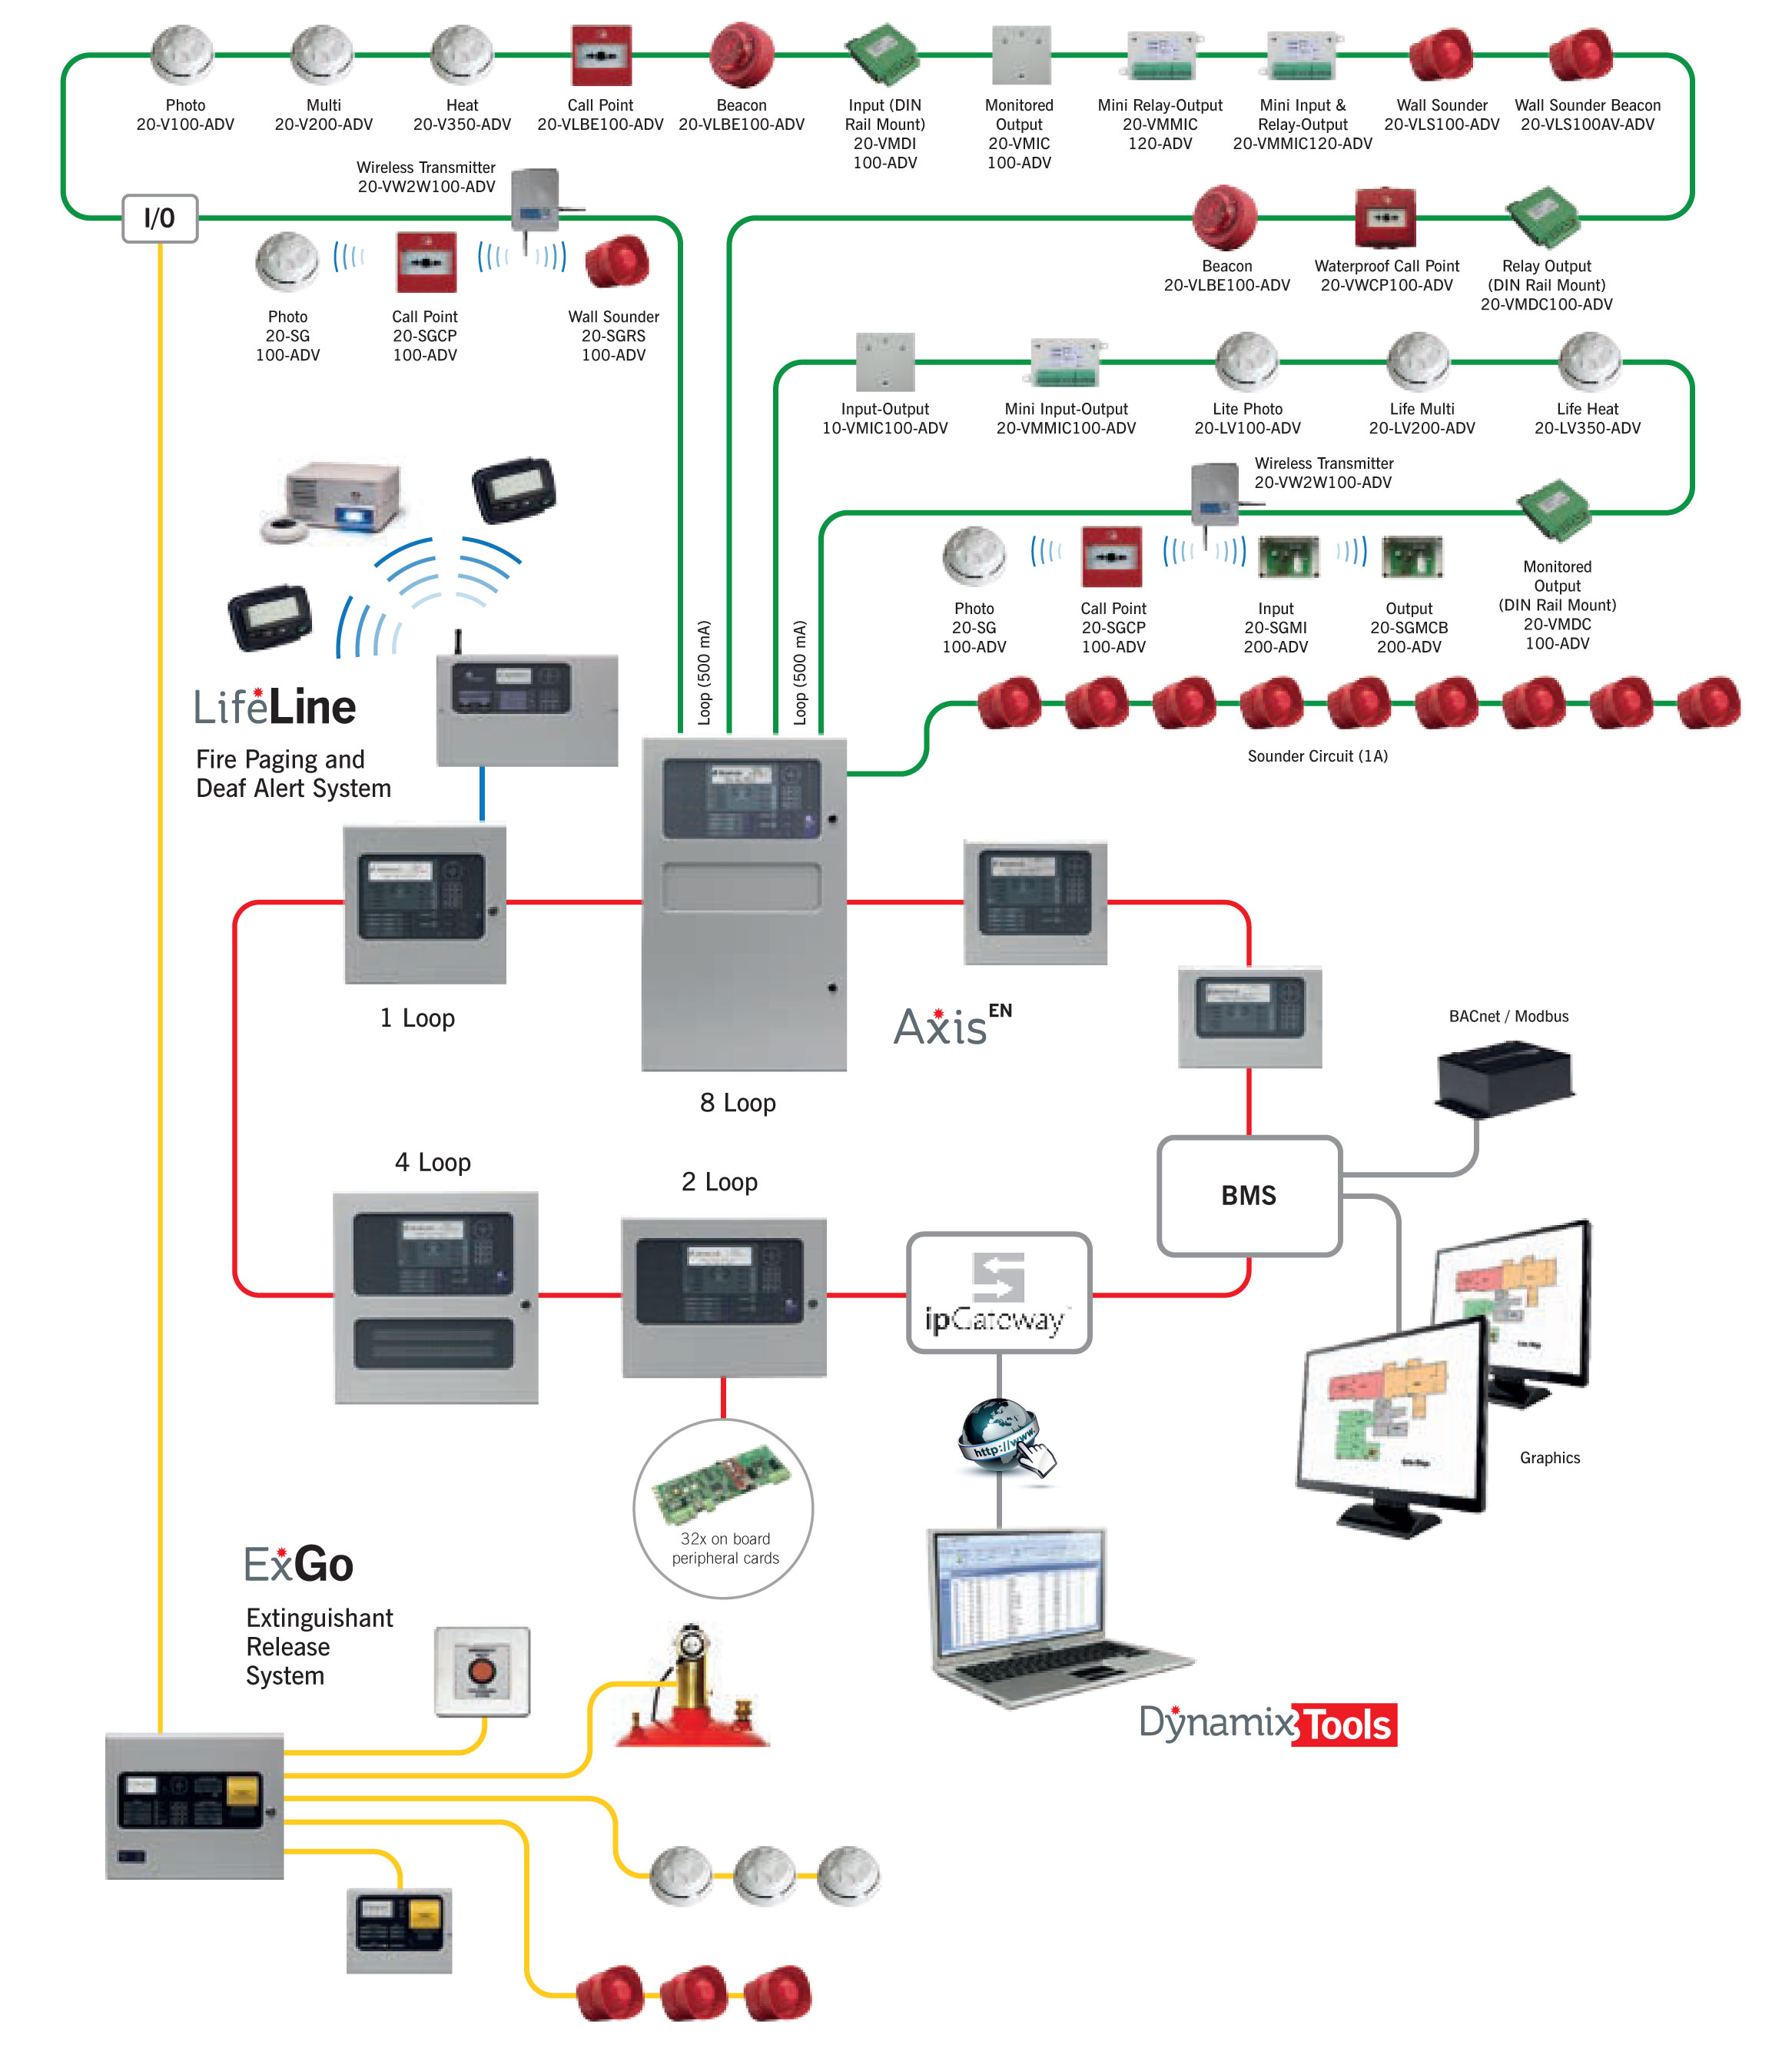 Axis En System Diagram on smoke alarm systems wiring diagrams